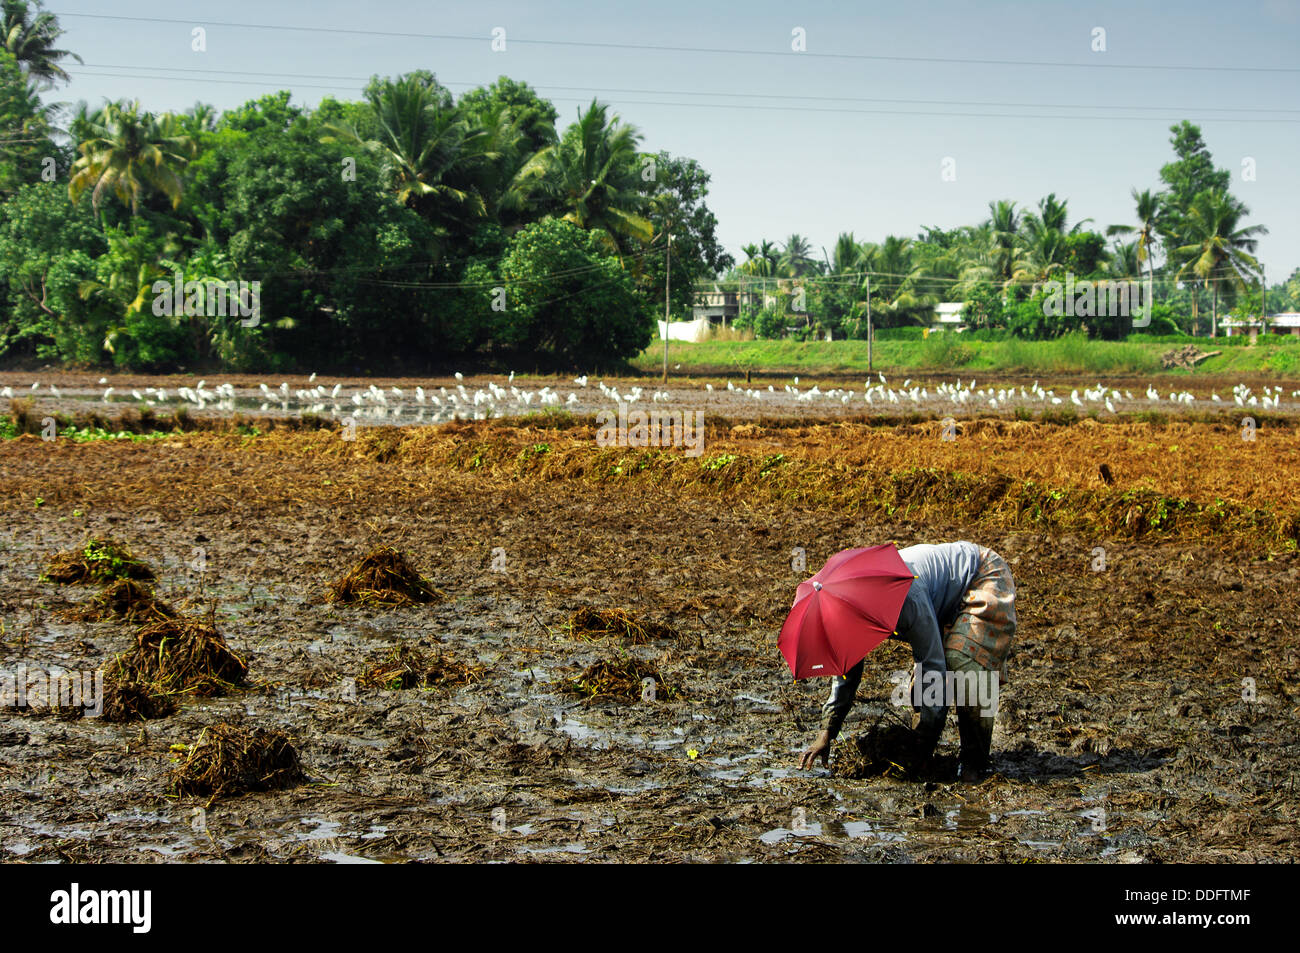 about farmers in india in hindi India has been taking steps to address the high number of farmers in india who are killing themselves the figures are shocking, but are they any higher than in india as a whole since the 1990s.